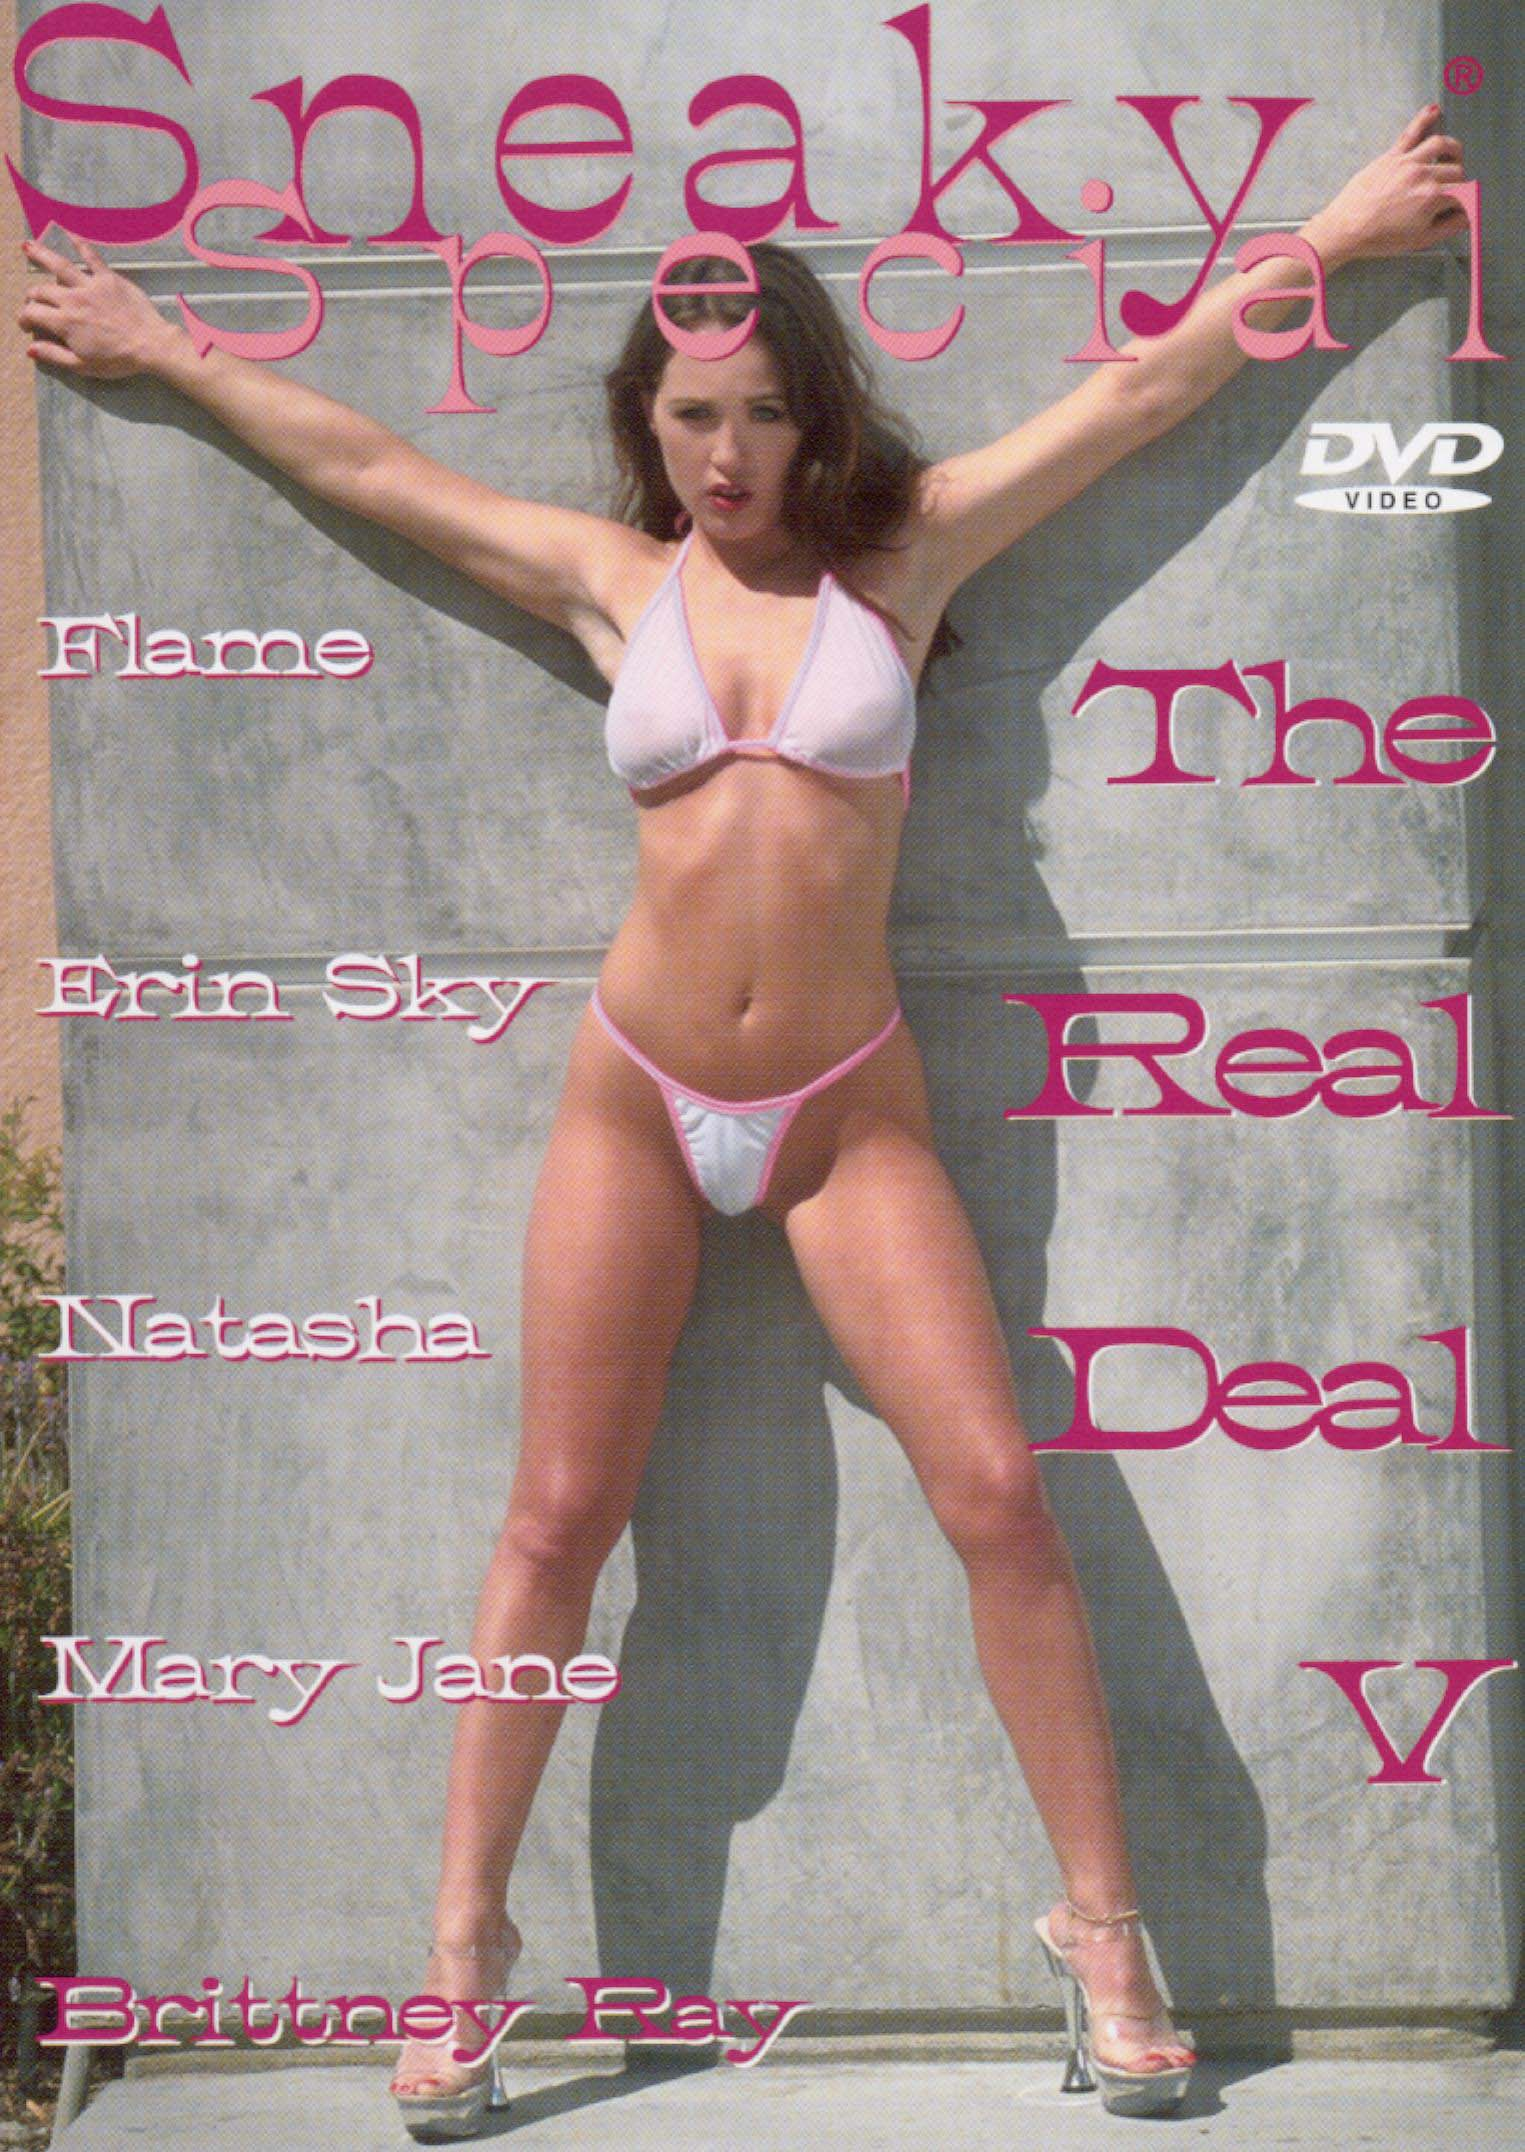 Sneaky Special: The Real Deal 5